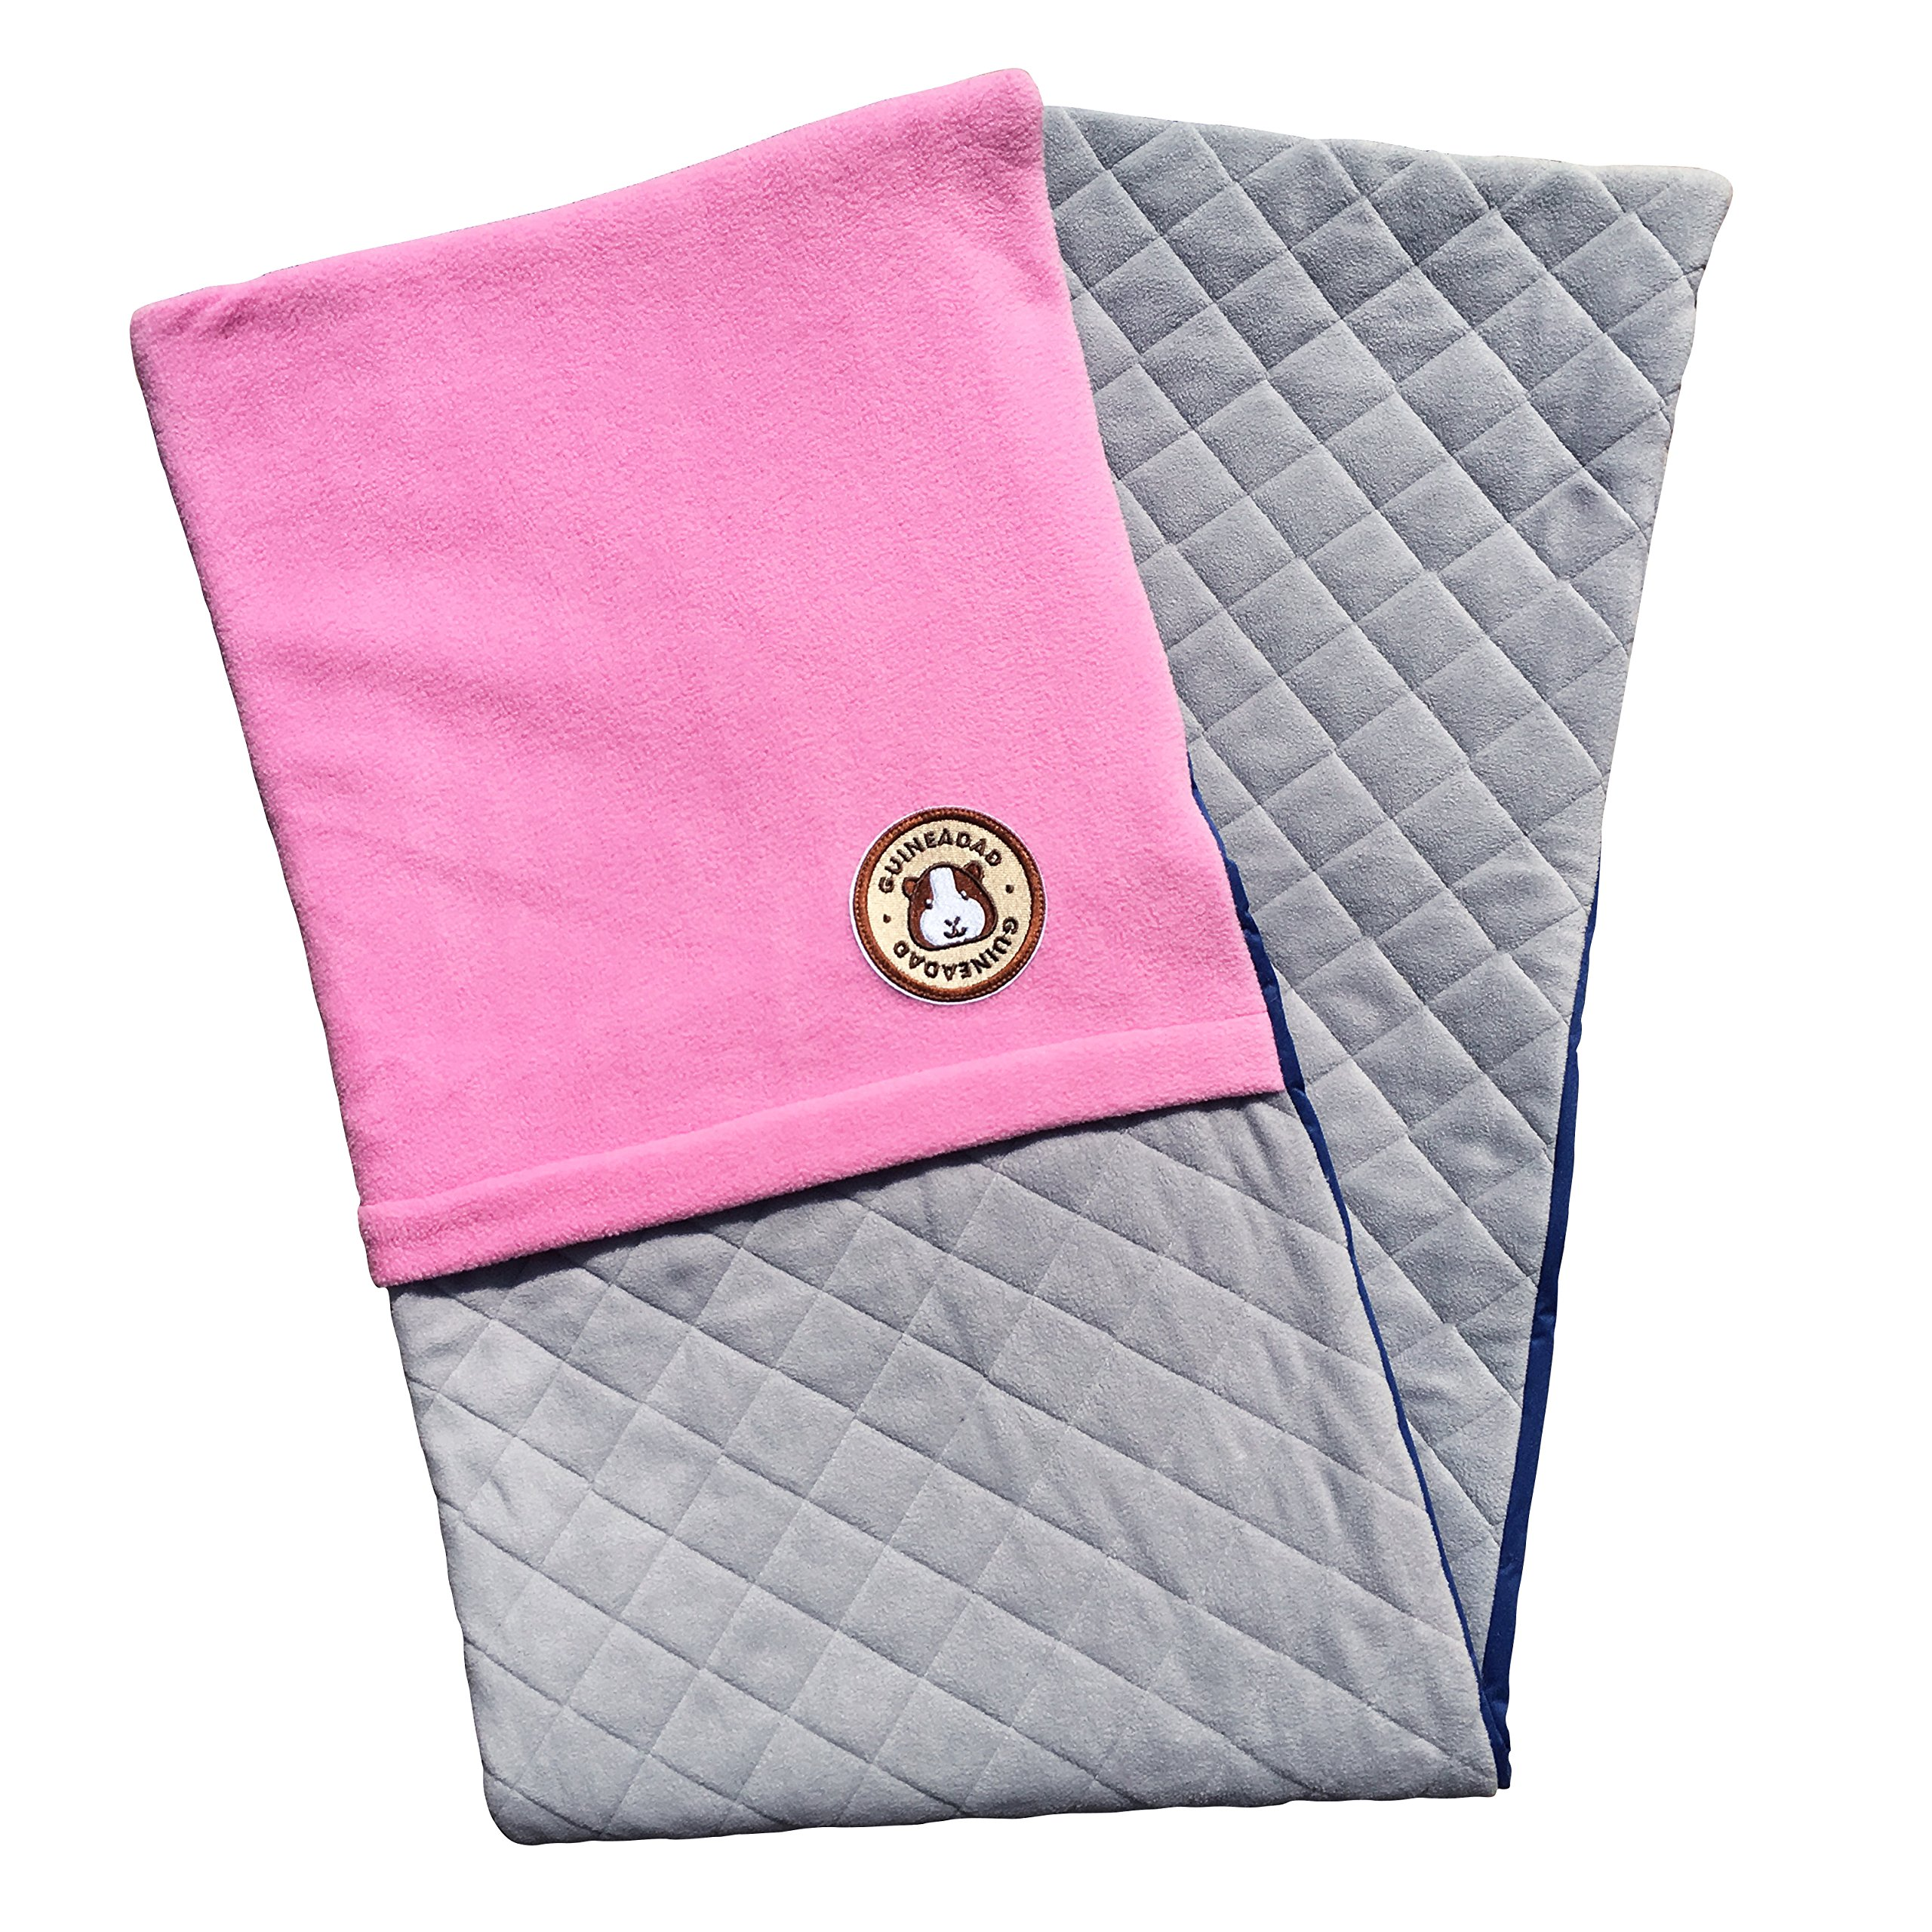 GuineaDad Fleece Liner 2.0 | Guinea Pig Fleece Cage Liners Bedding | Burrowing Pocket Sleeve | Extra Absorbent Antibacterial Bamboo | Waterproof | Available Various Cage Sizes by GuineaDad (Image #6)